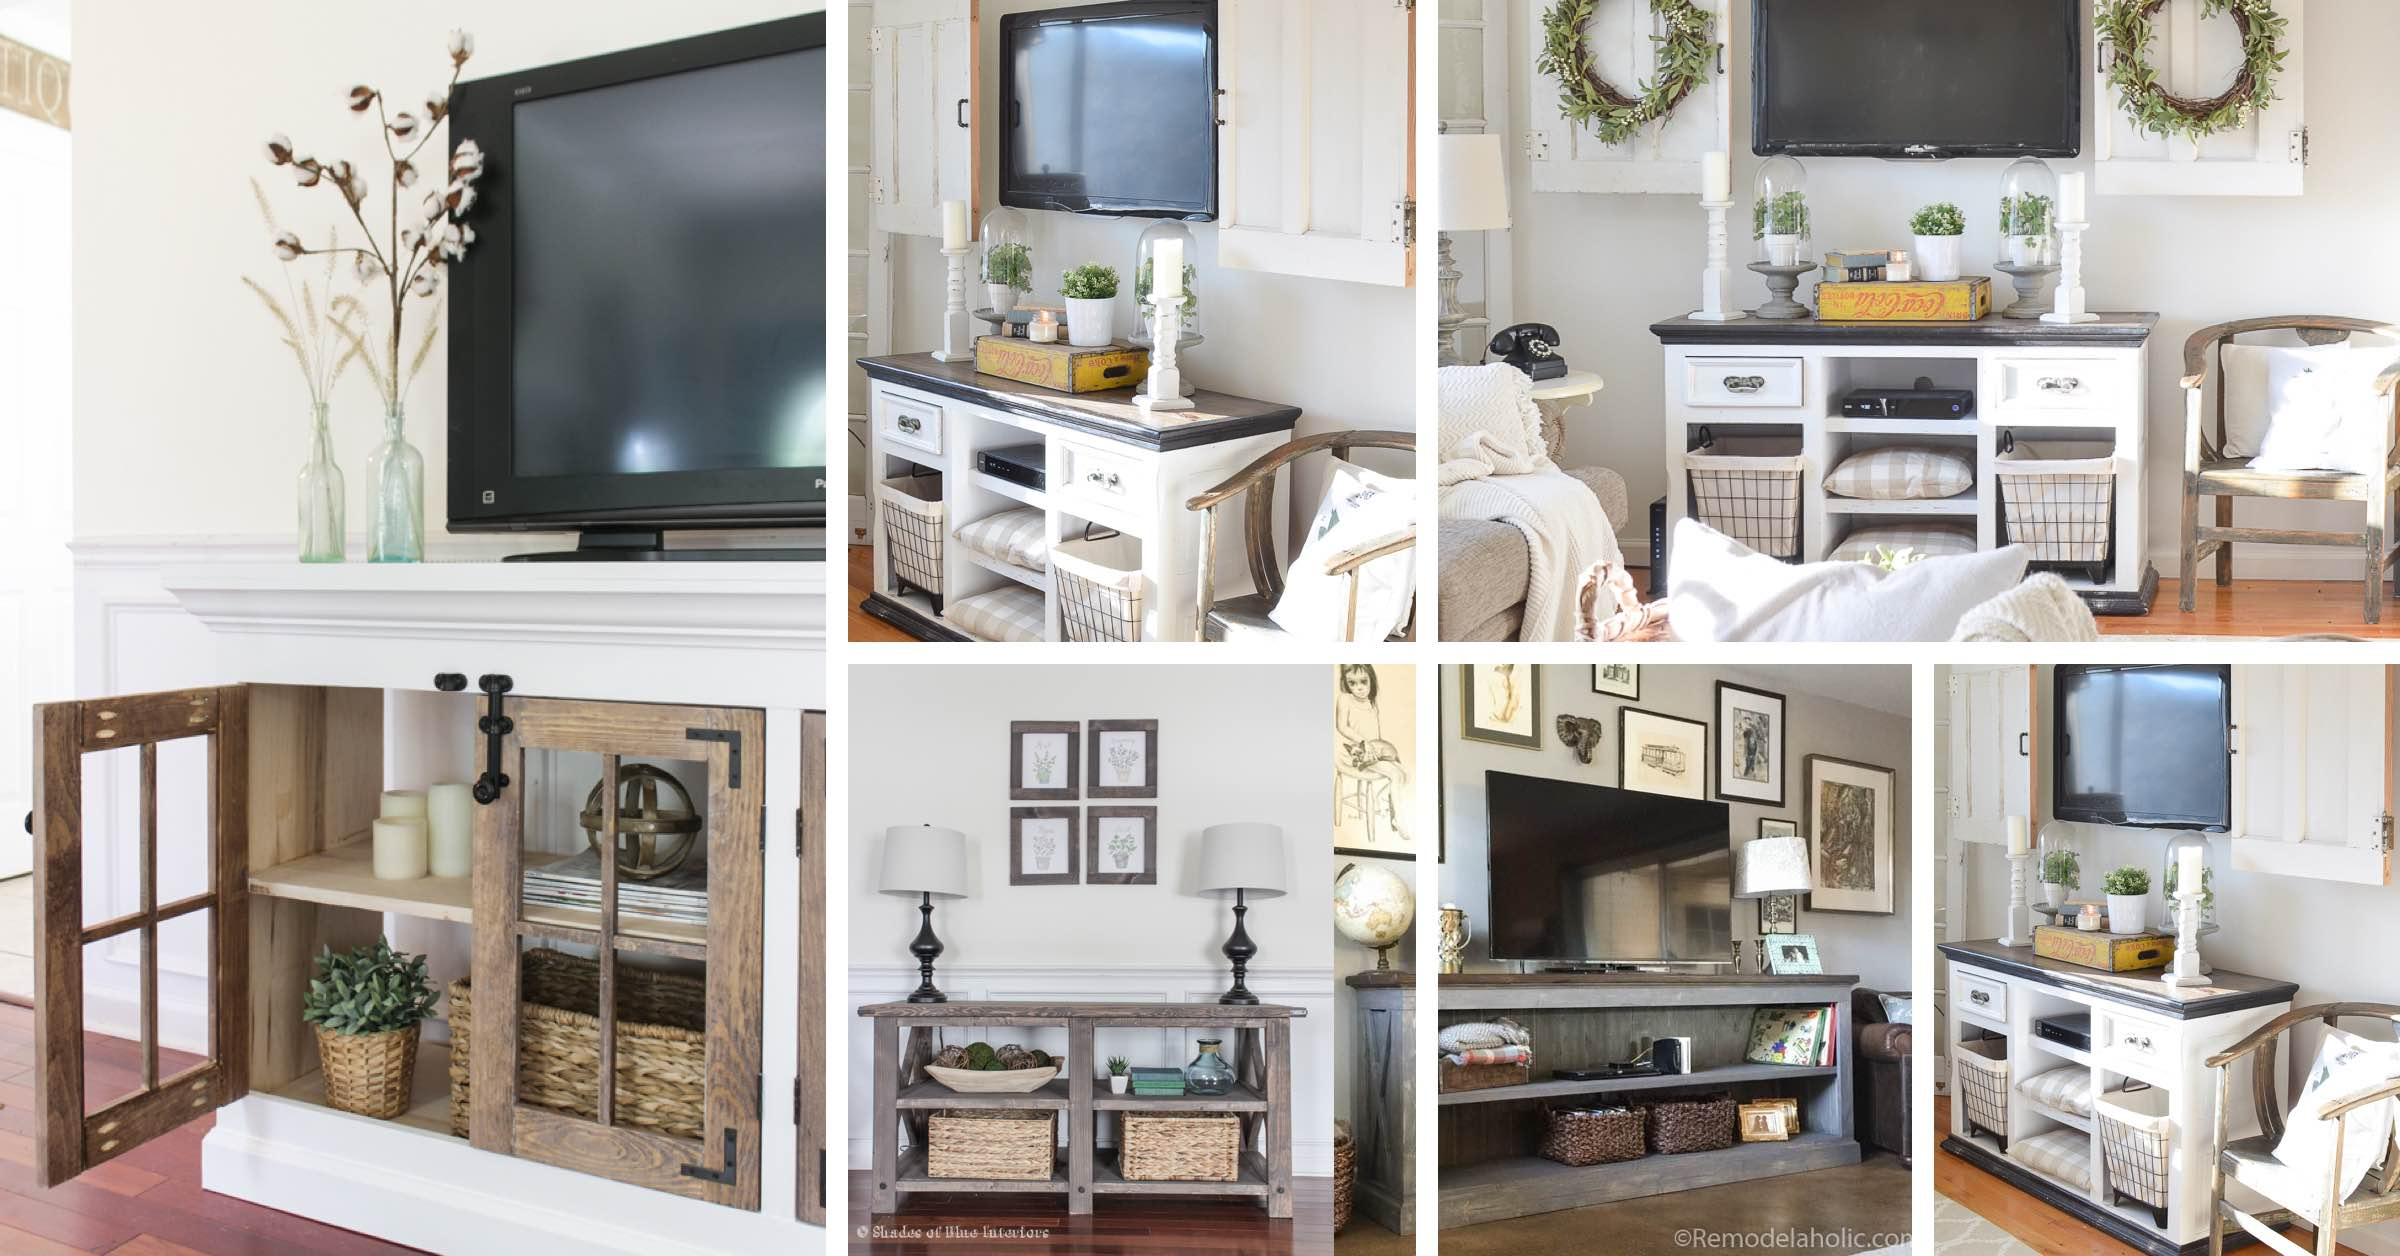 17 Farmhouse Tv Stand Ideas As Functional As They Are Stunning To Look At